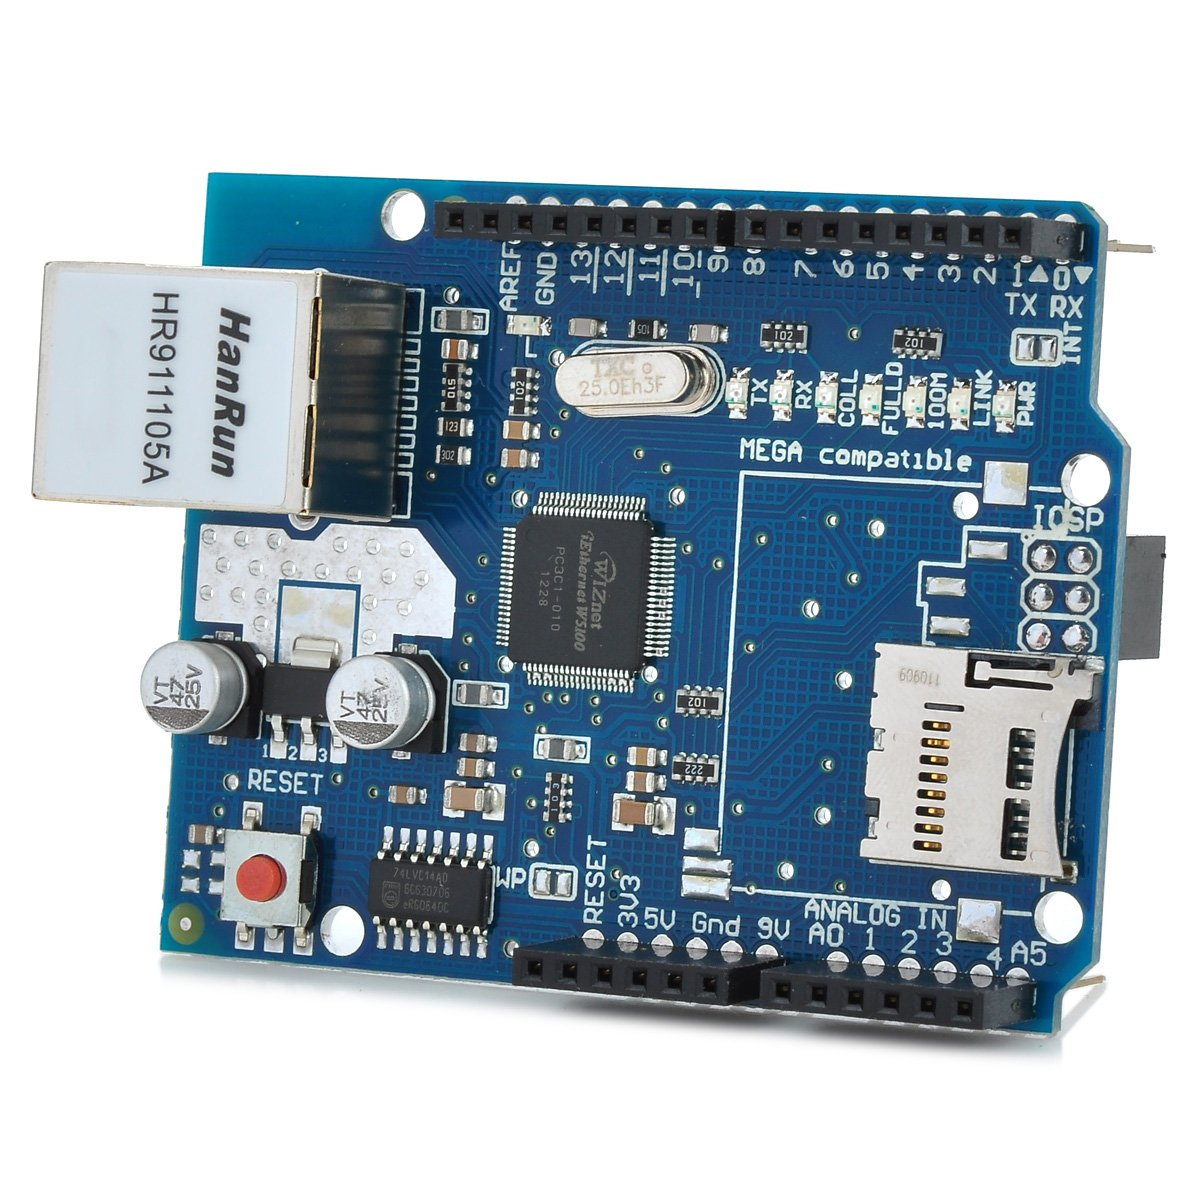 Blue Ethernet Network Expansion Board Micro SD Card Slot for Arduino by IDS Home (Image #1)